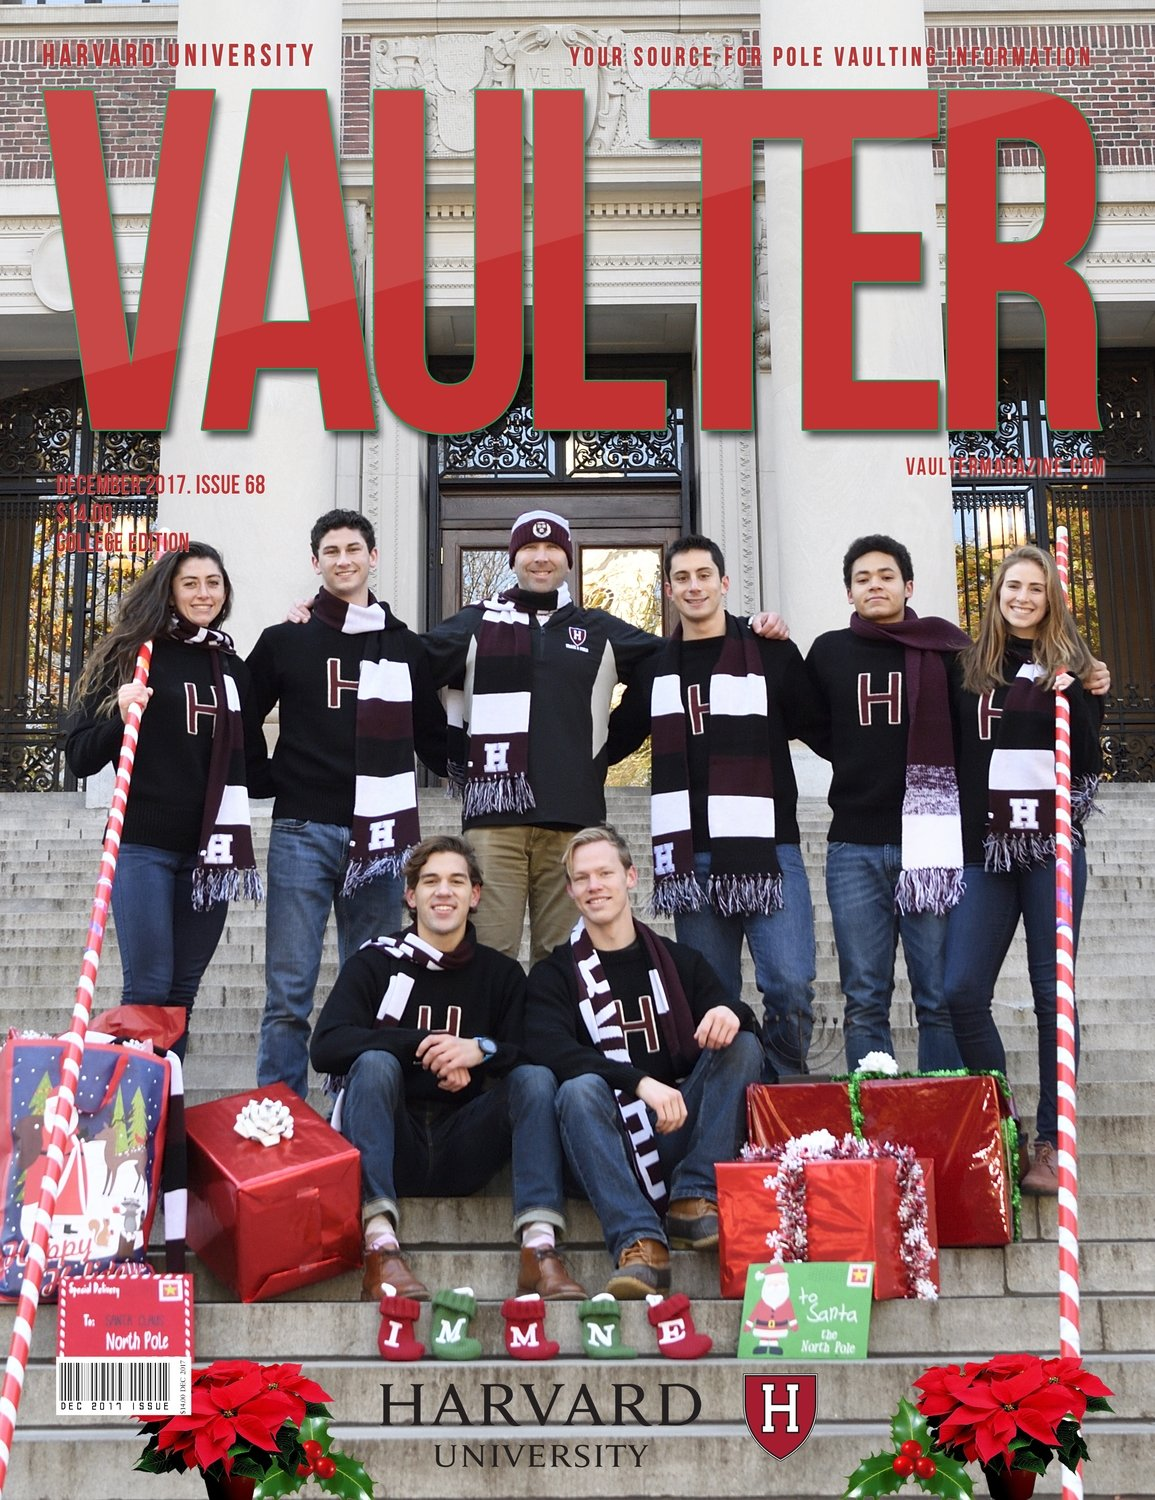 December 2017 Harvard University Issue of Vaulter Magazine Cover Poster for Vaulter Magazine